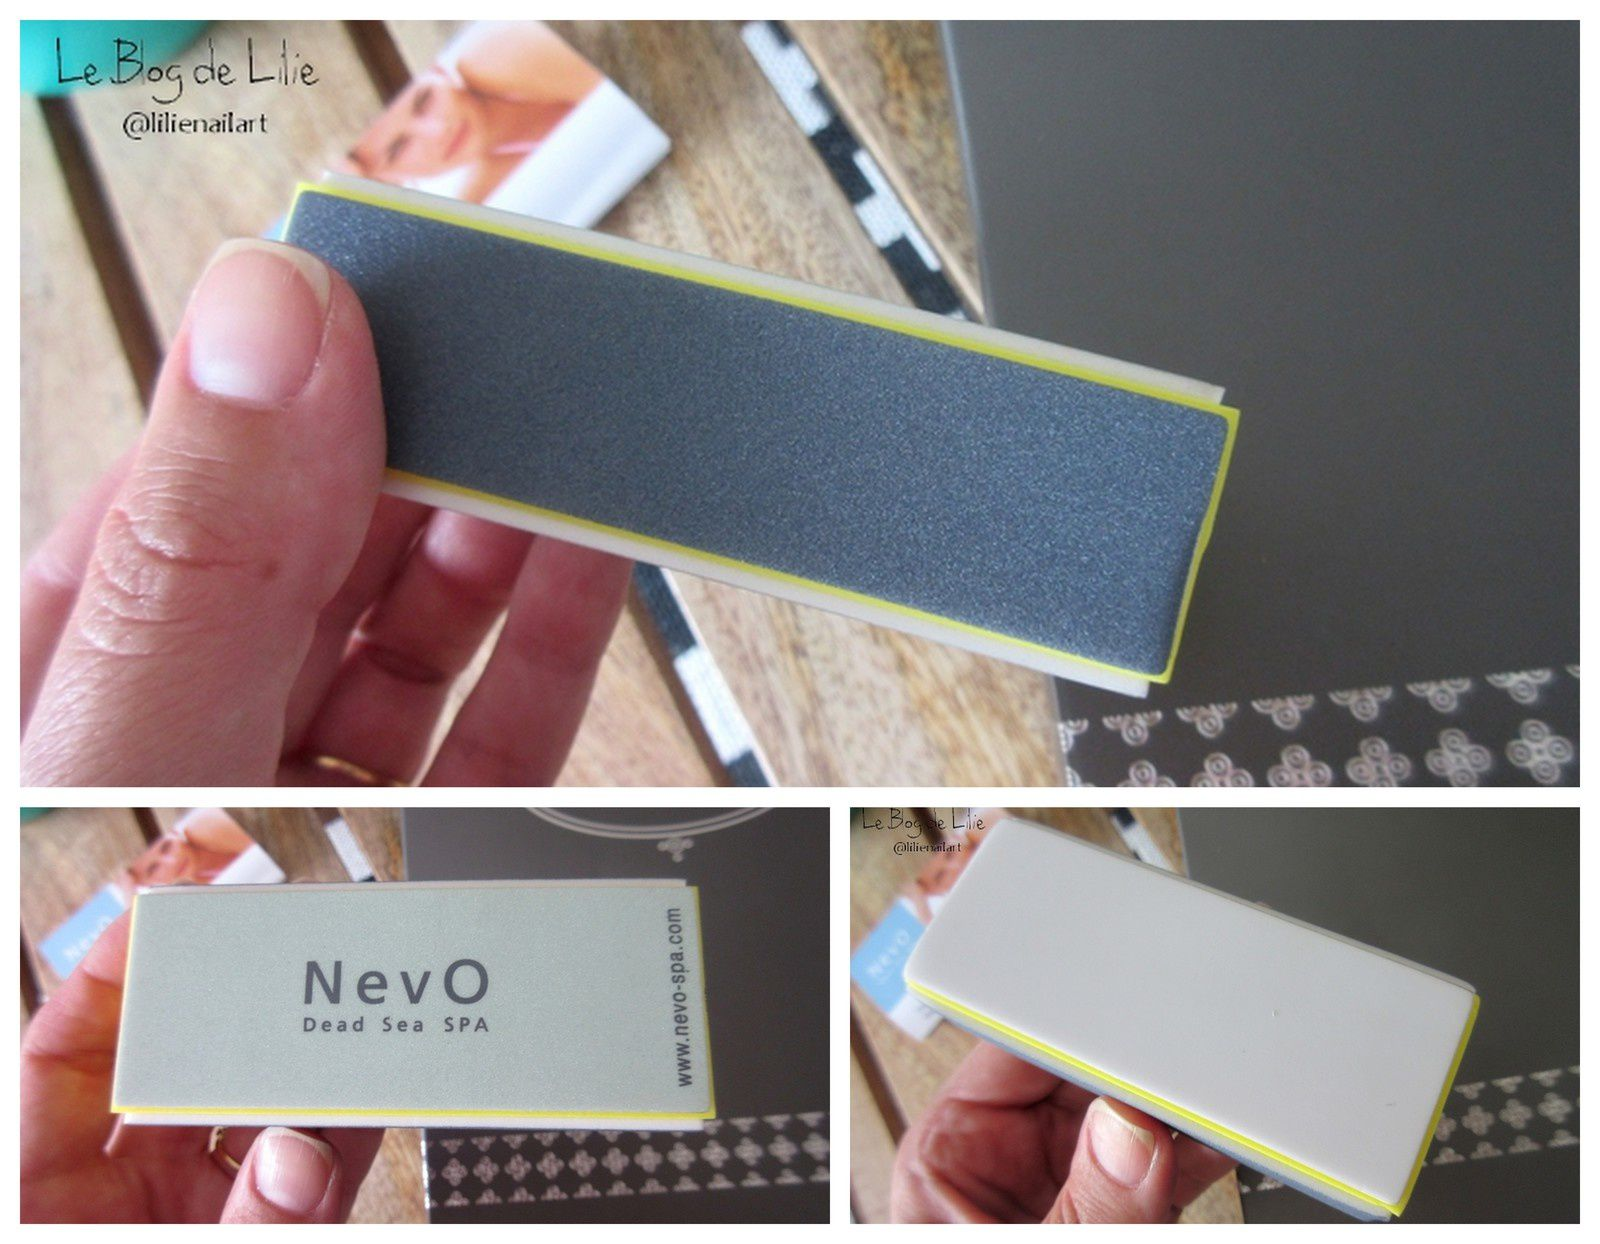 Deluxe Nail Care Kit by NevO - Dead Sea SPA